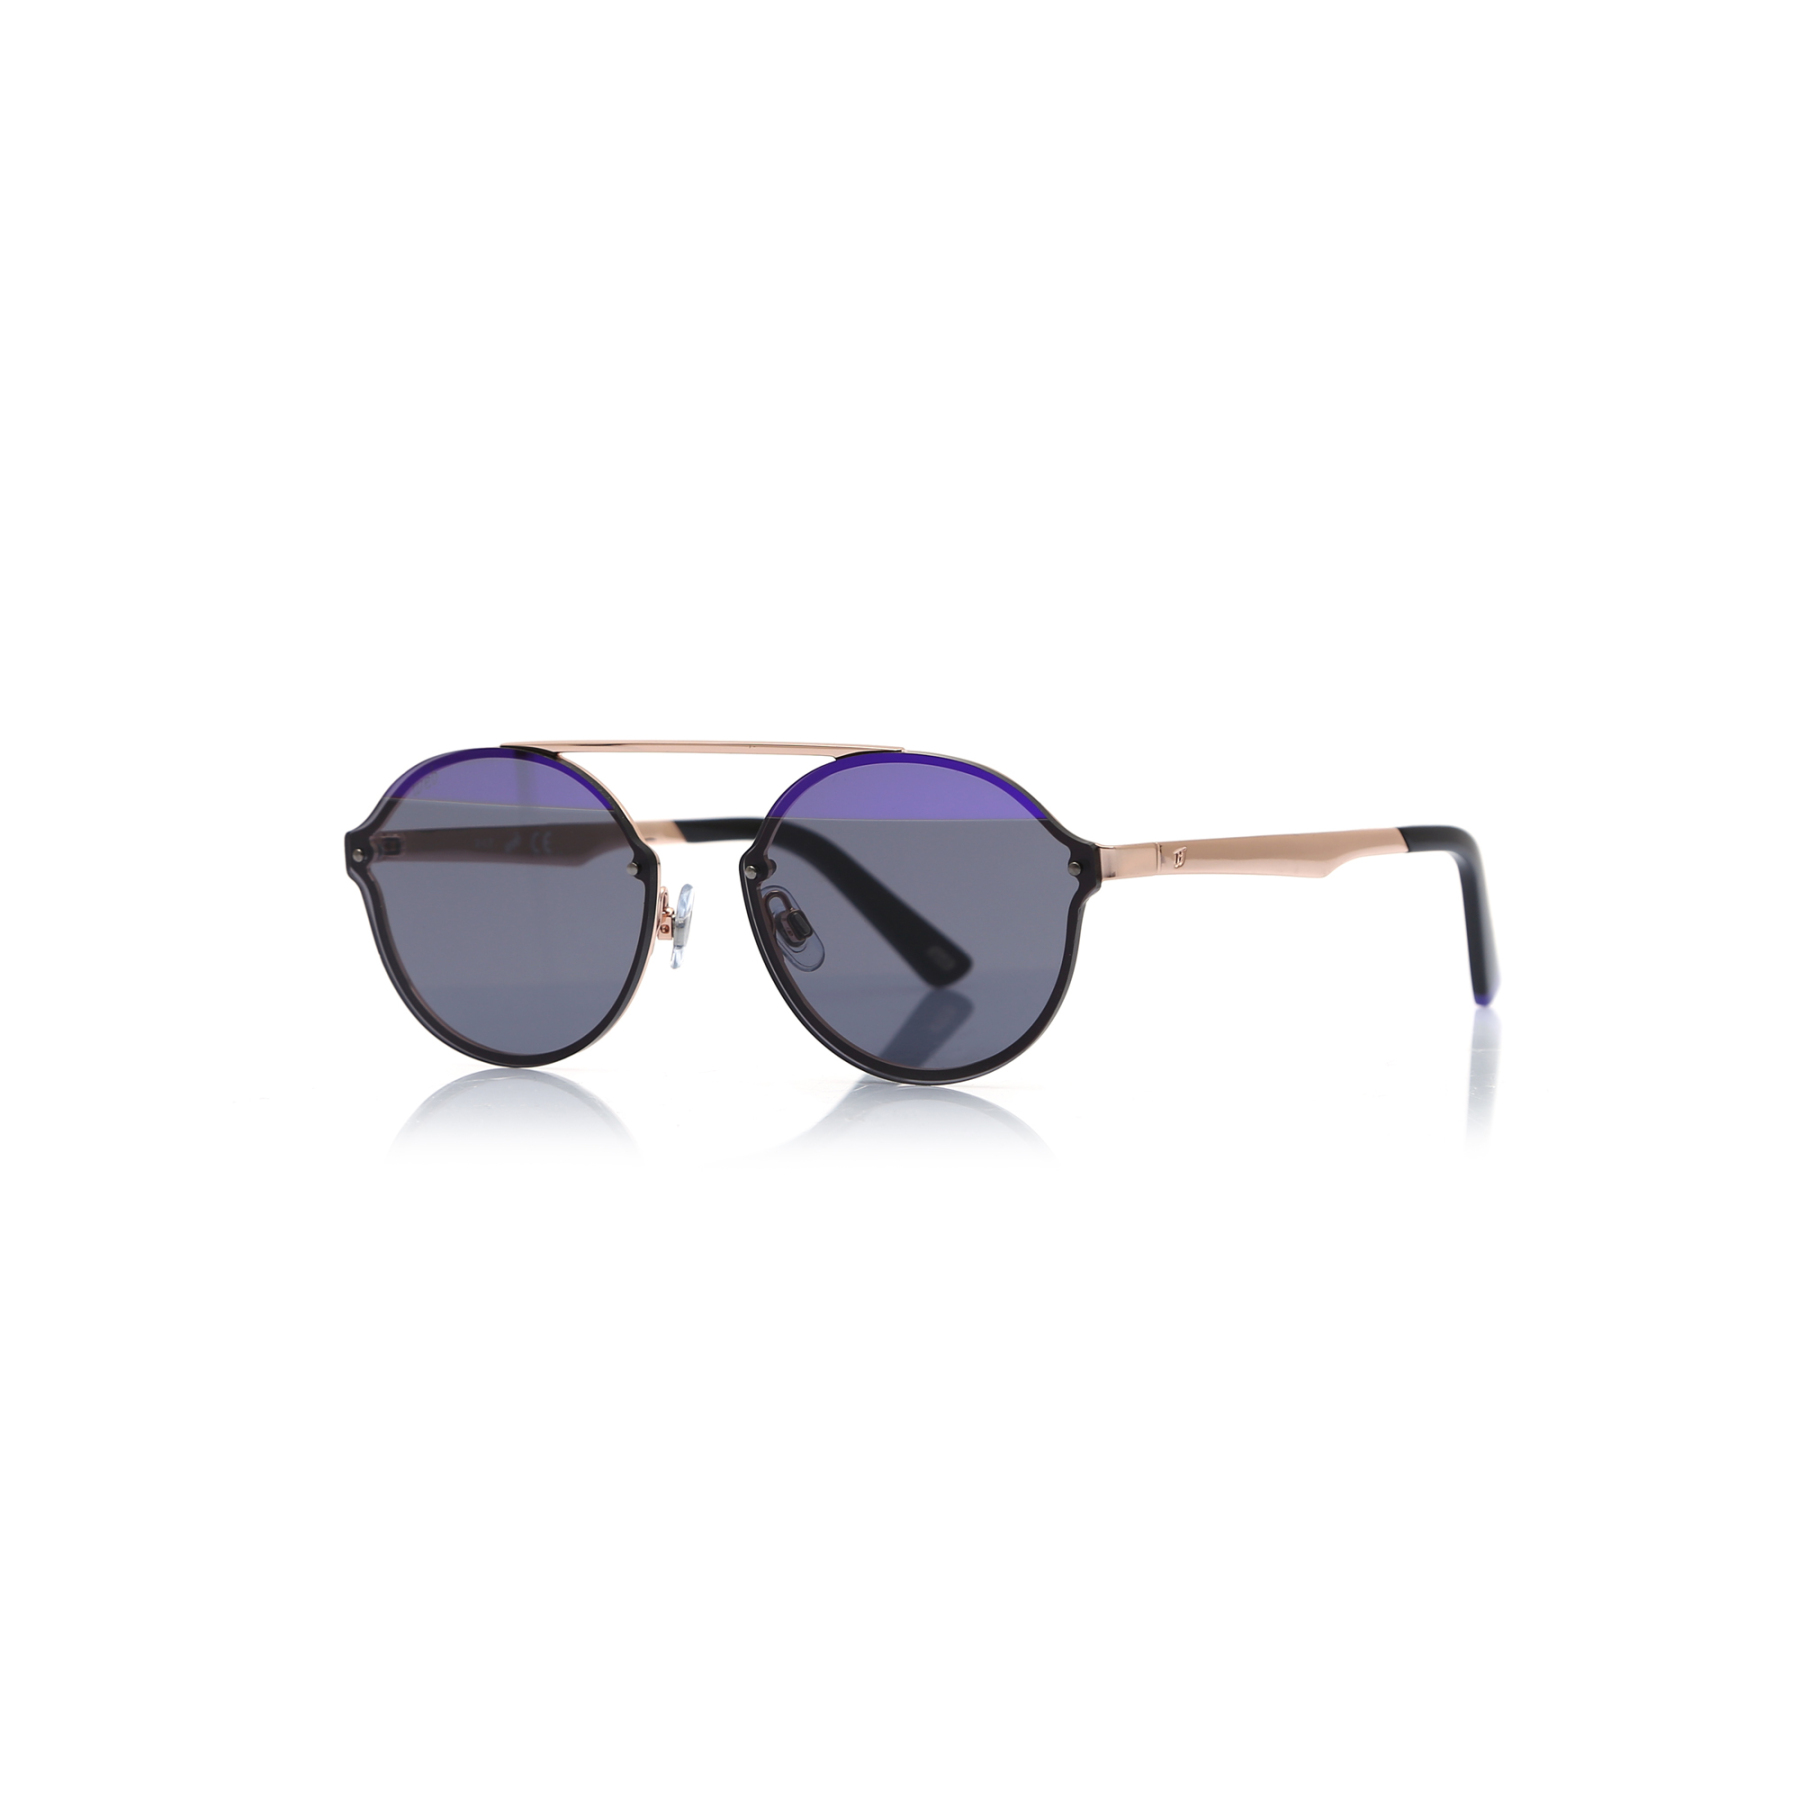 Unisex sunglasses w 0181 34z metal gold organic oval aval 58-15-140 web